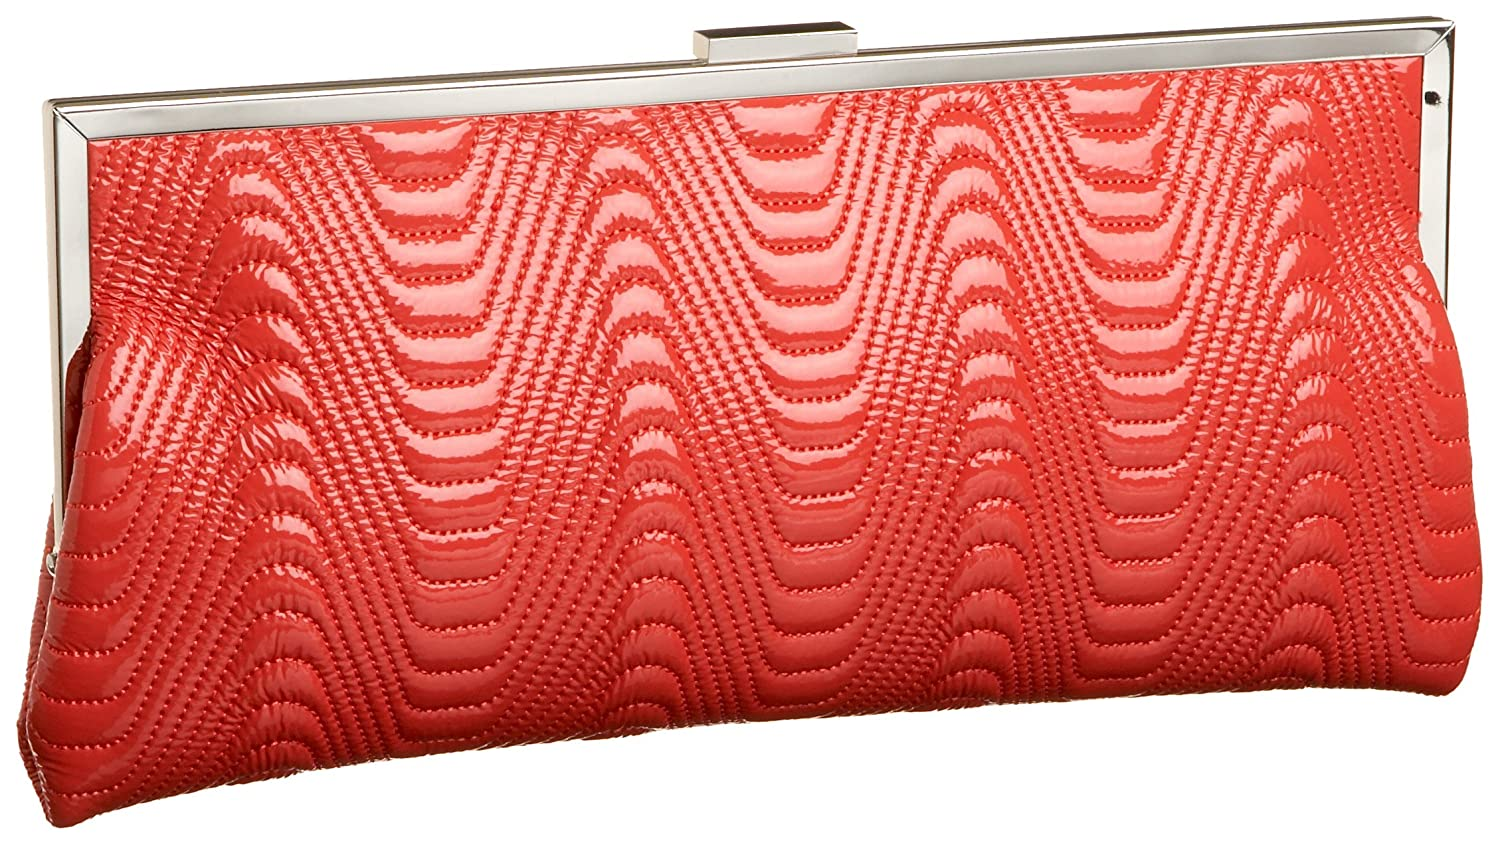 HOBO INTERNATIONAL Wava Clutch